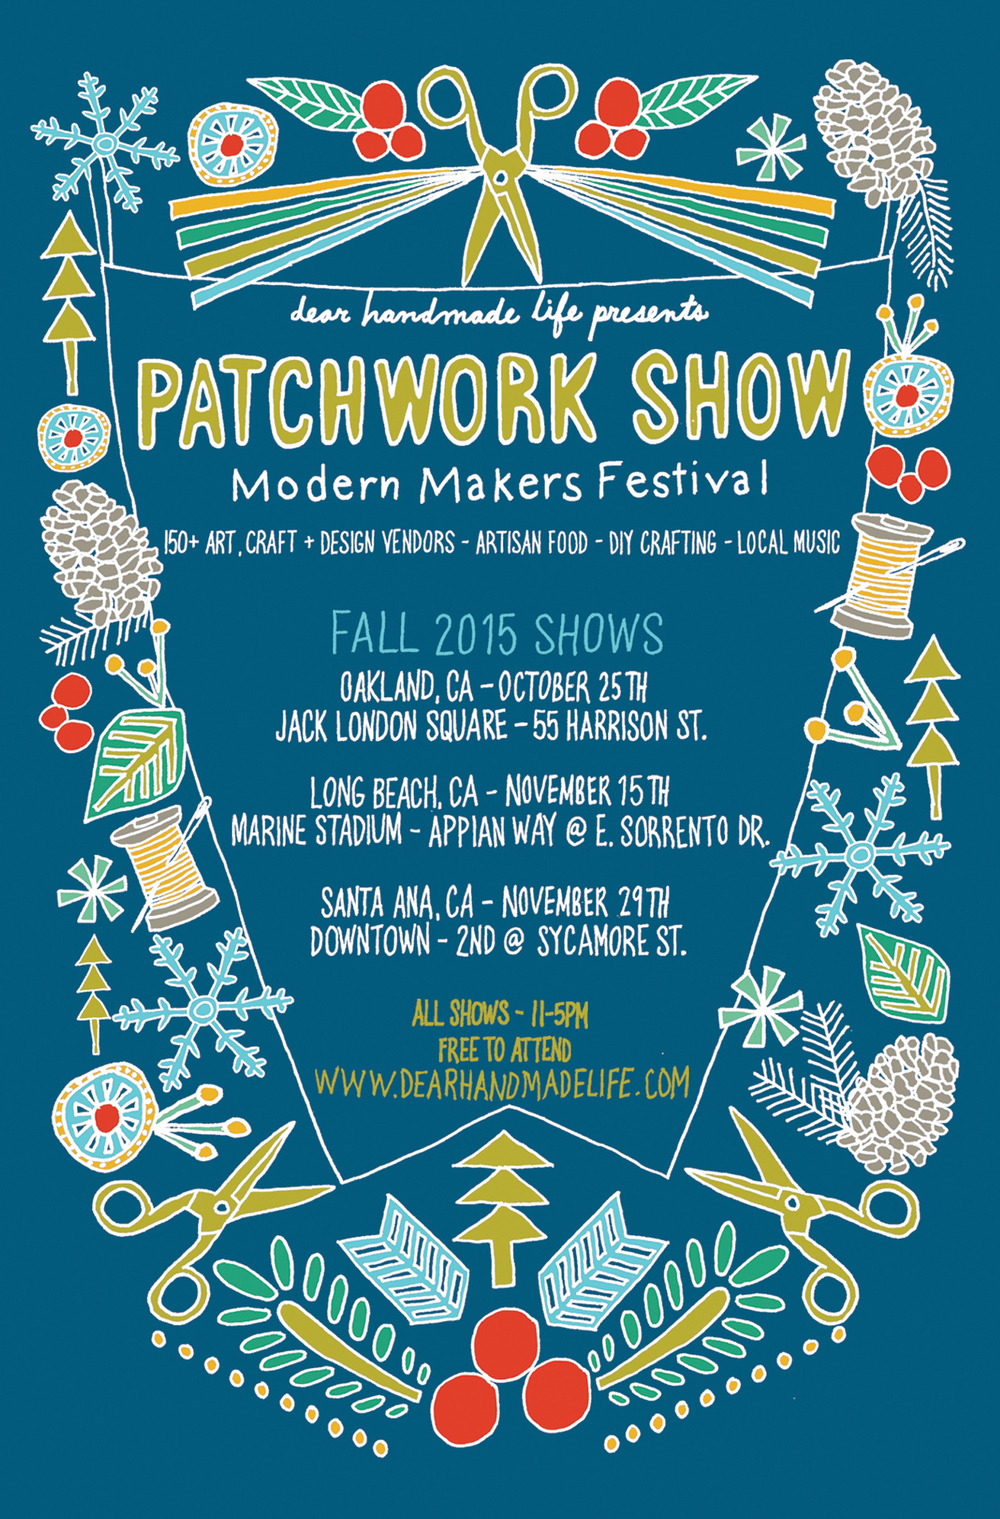 scissors flower blue patchwork show indie craft show fair illustration design poster postcard nicole stevenson studio.jpg